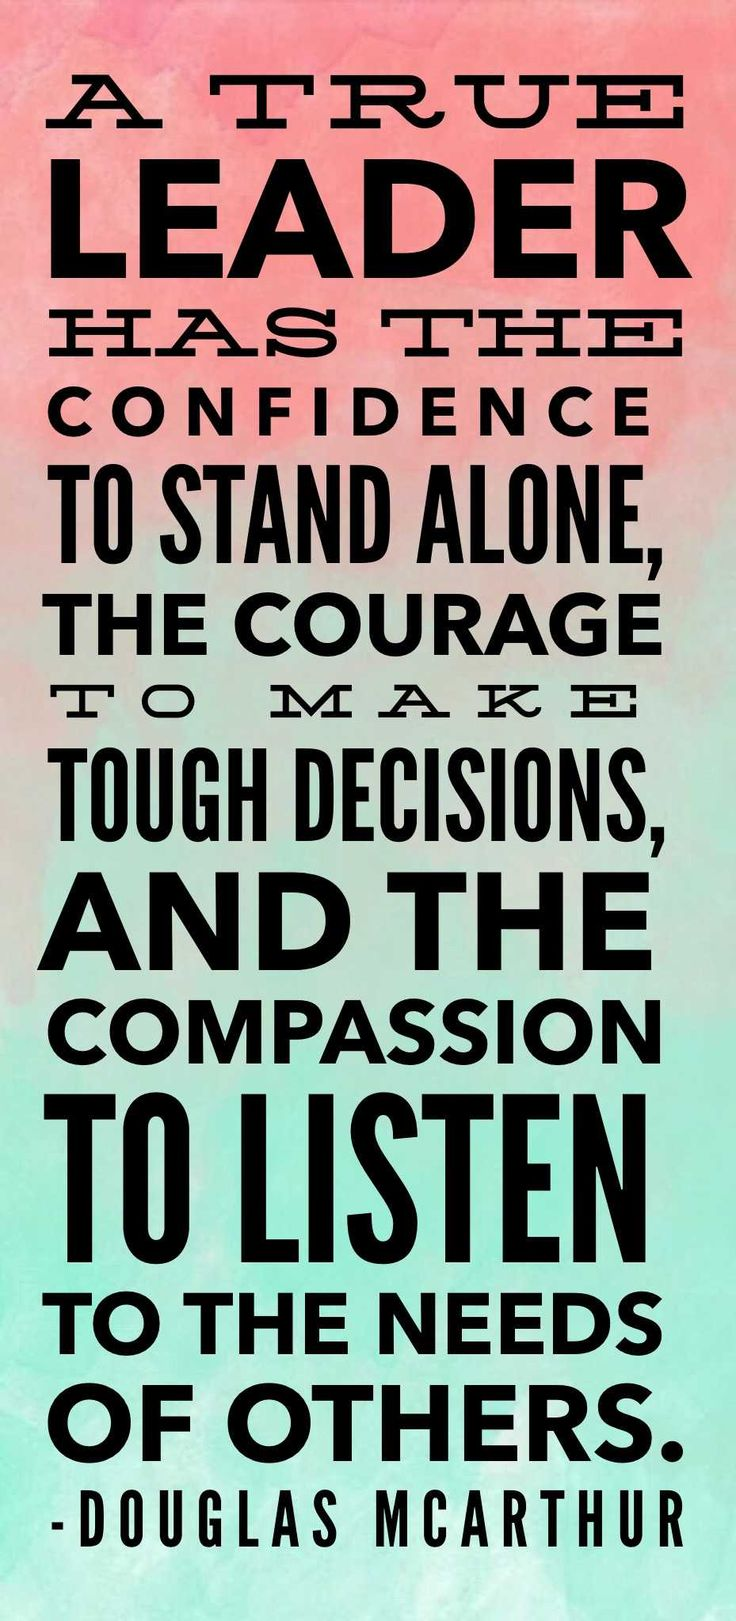 Compassion quote image